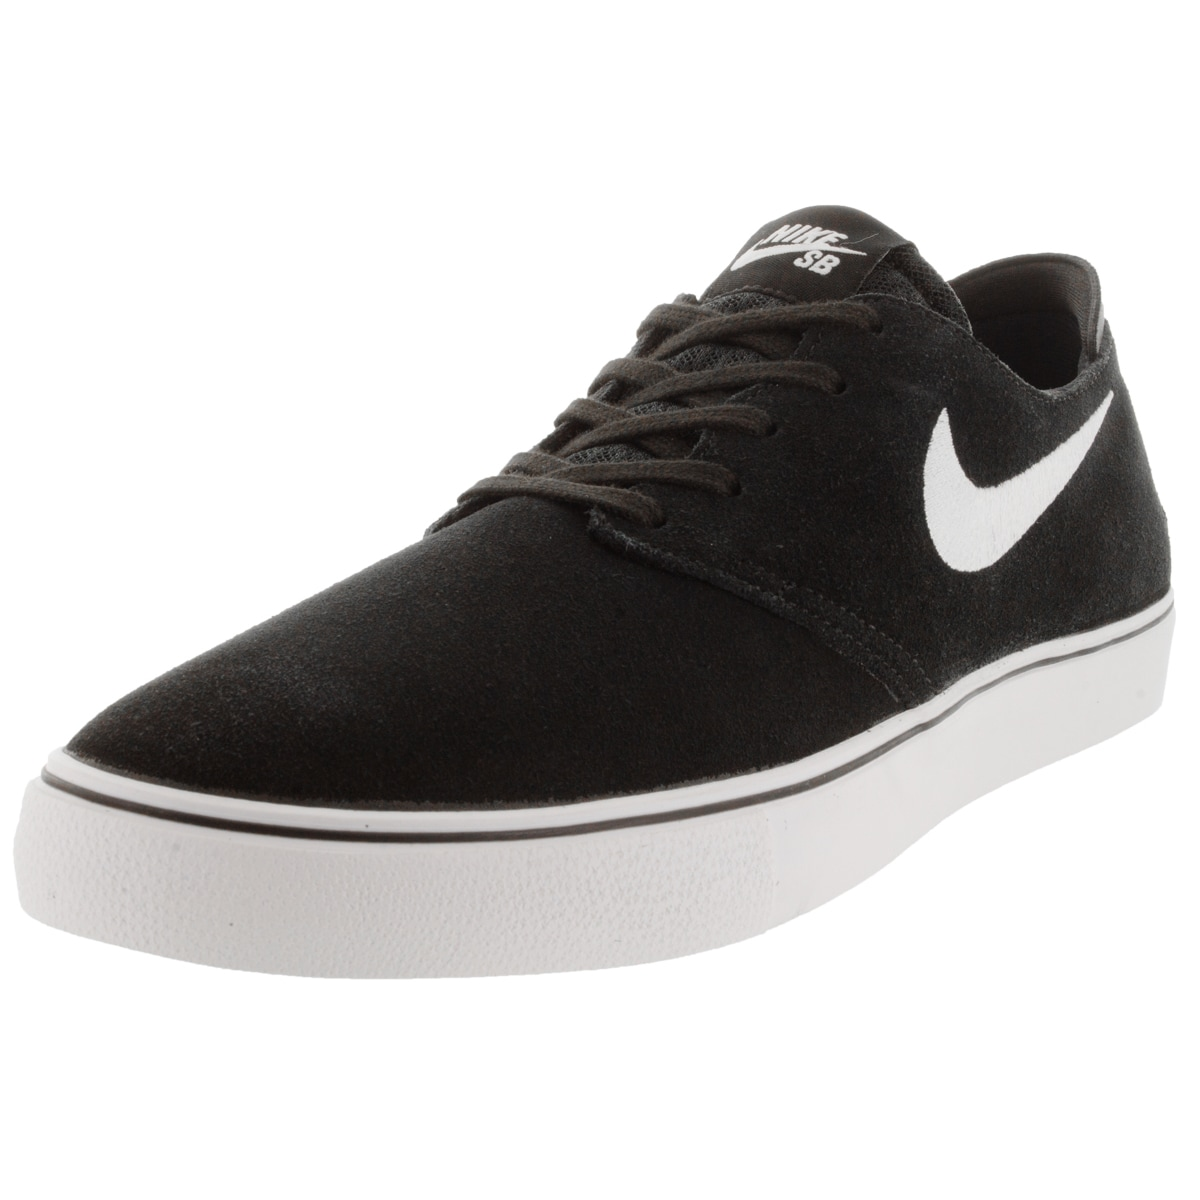 98fa3f1d32b Nike-Mens-Zoom-Oneshot-Sb-Black -White-Gum-Light-Brown-Skate-Shoe-54ffe8c3-b274-4d87-b2e8-a4bc47d913c1.jpg